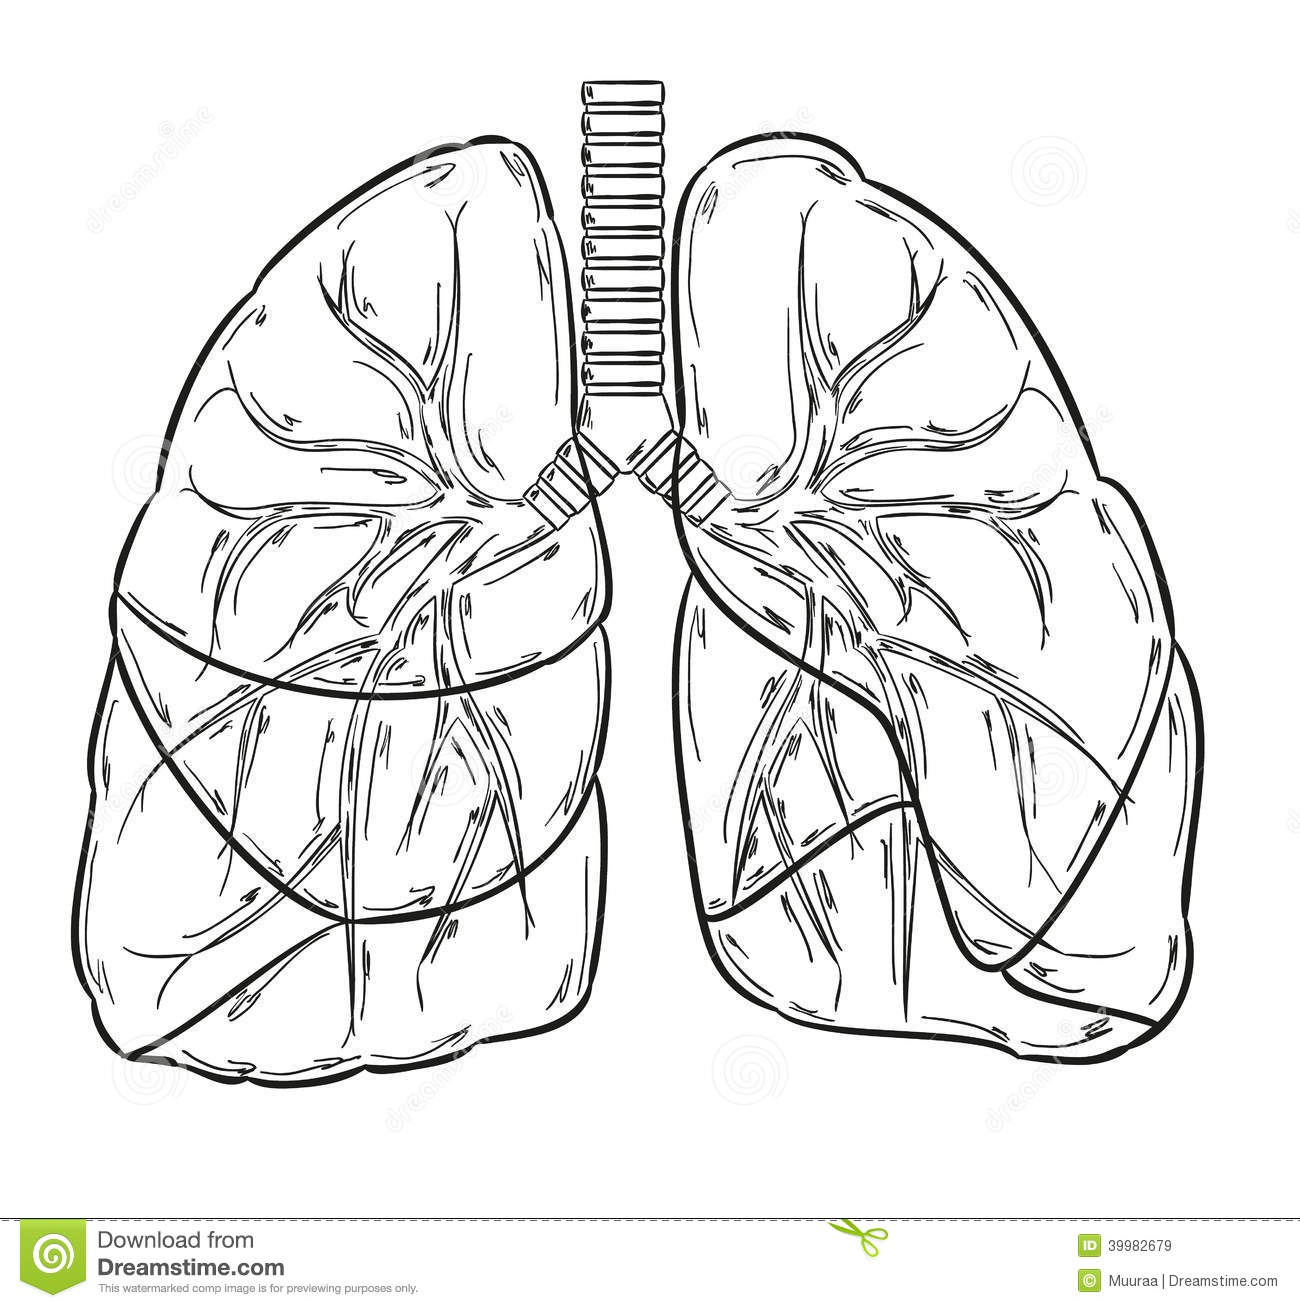 respiratory therapy coloring pages - photo#36